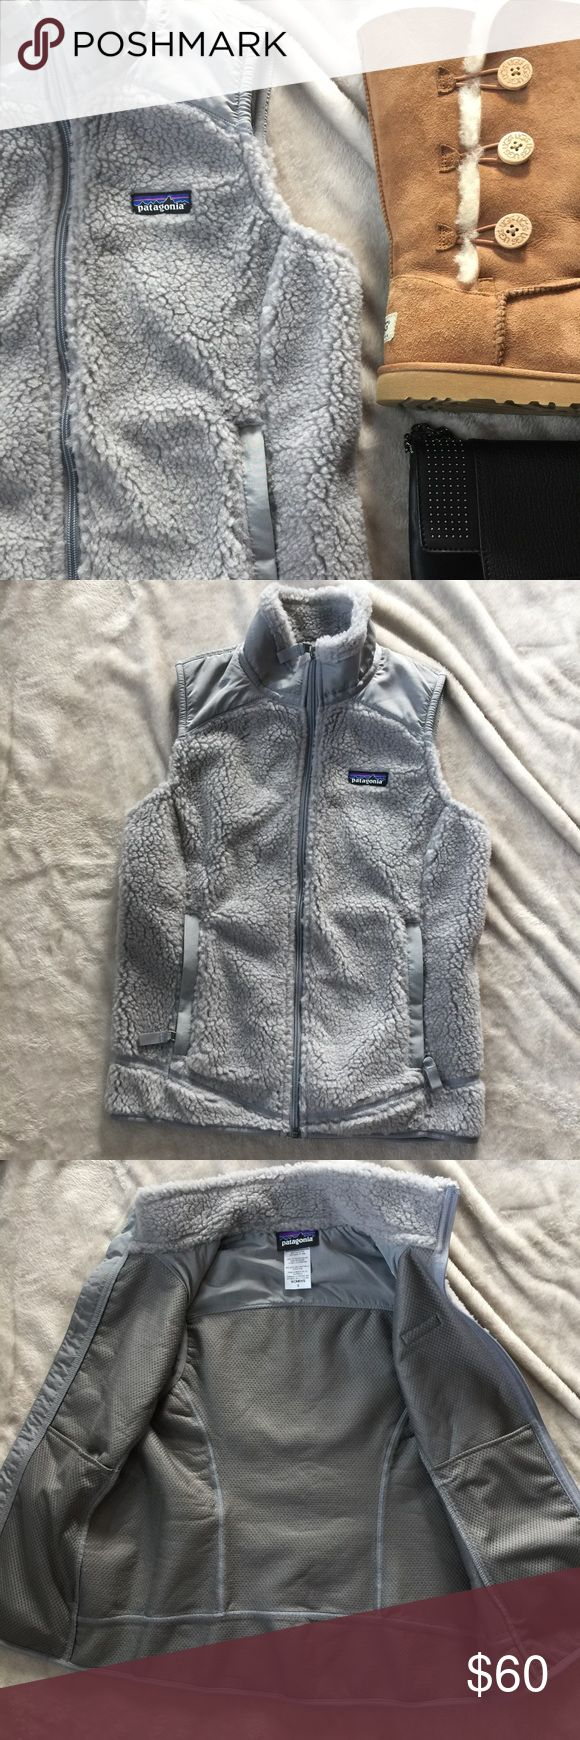 Grey Patagonia Fleece Vest Excellent condition grey fleece Patagonia vest. Never Worn! No holes, tears or stains! Zippers all work great! Women's size small. Patagonia Jackets & Coats Vests